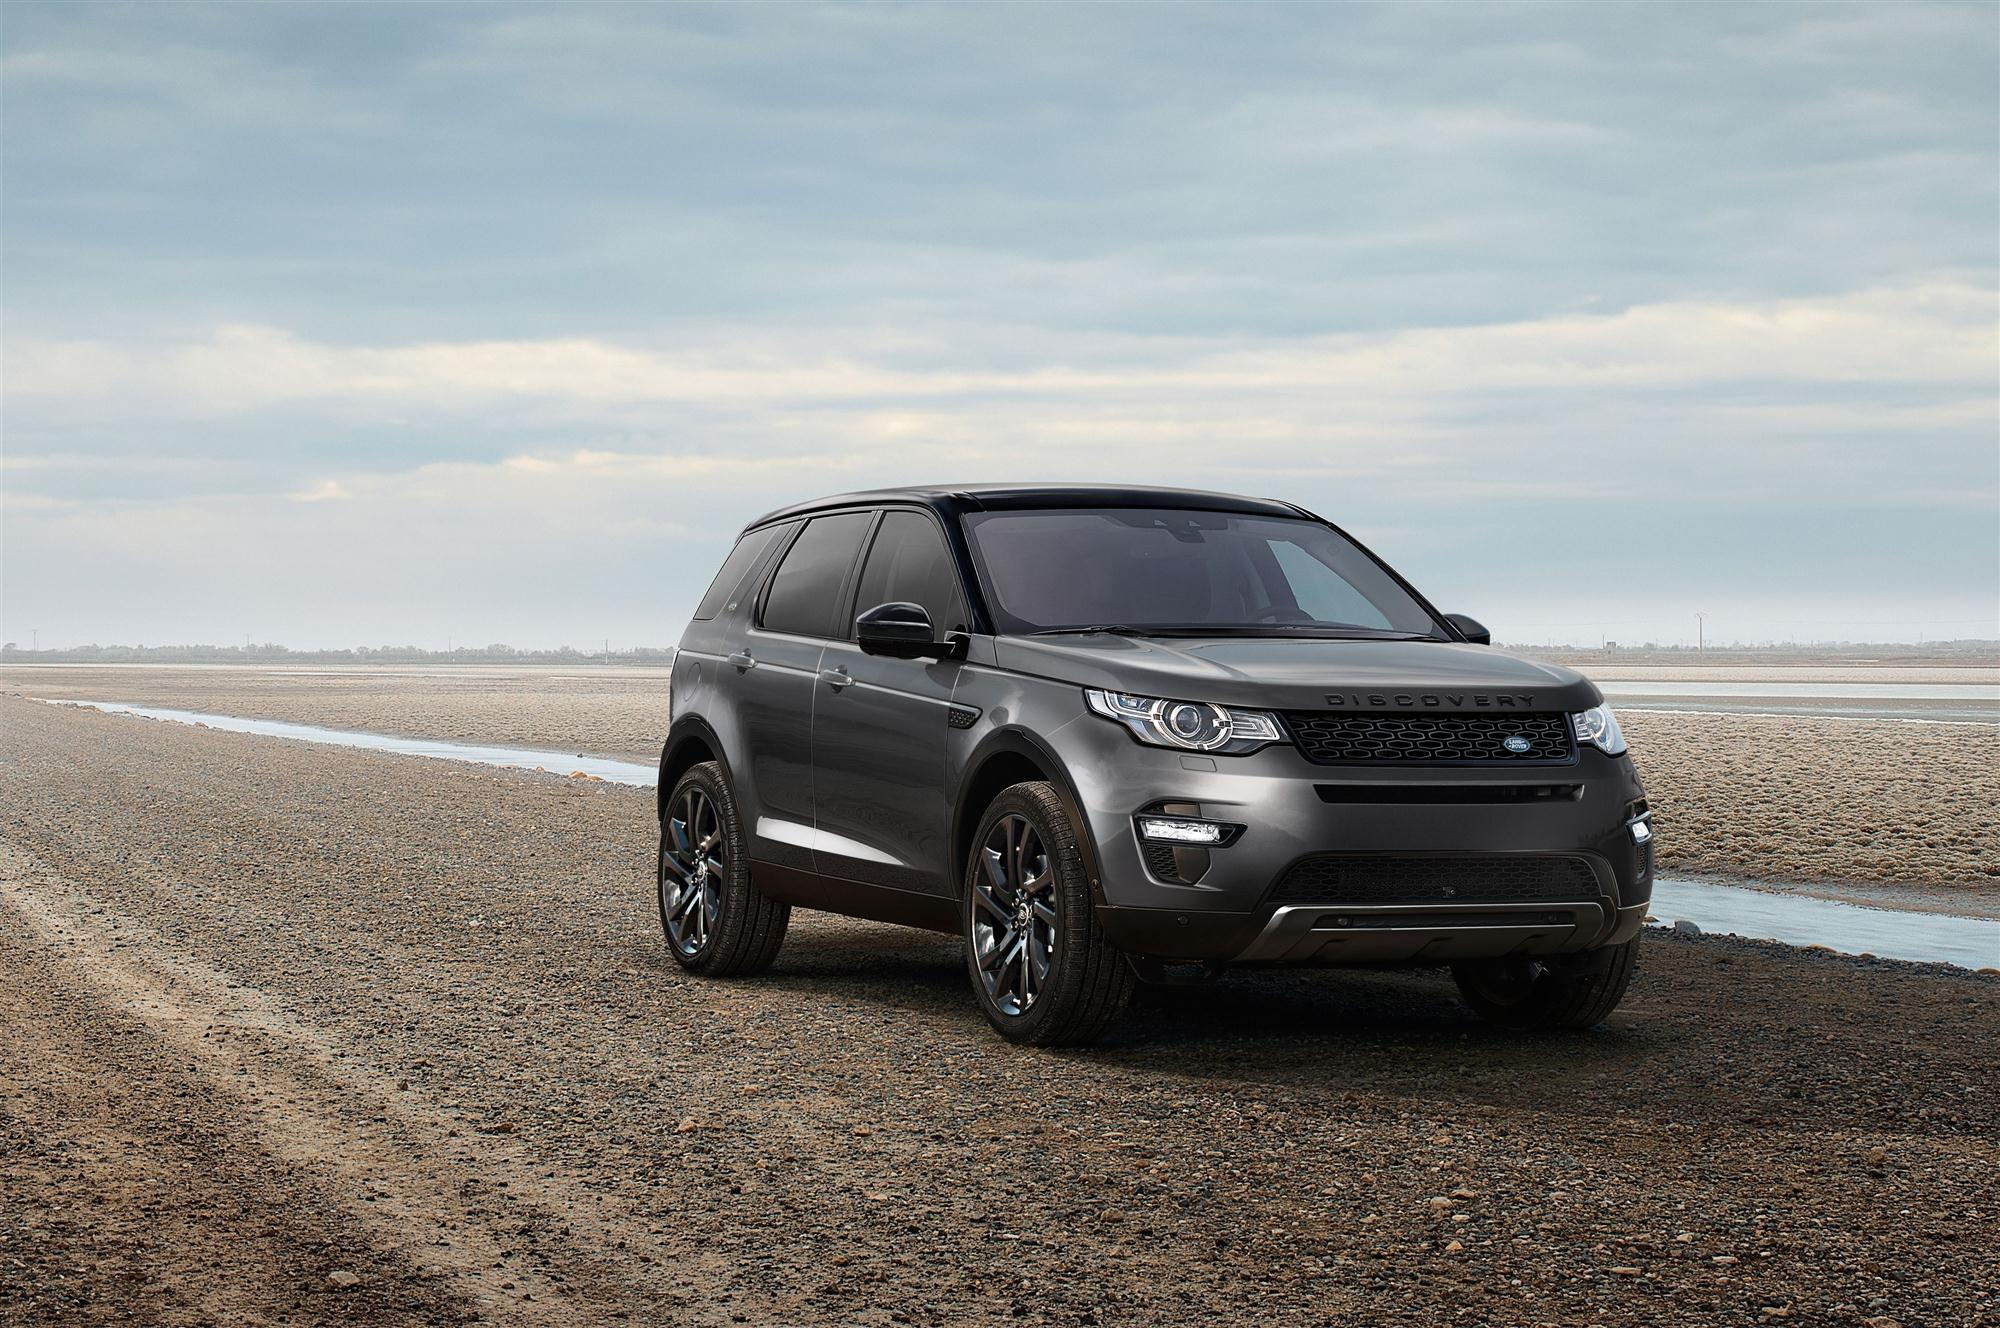 2018 land rover discovery sport review new suv price. Black Bedroom Furniture Sets. Home Design Ideas